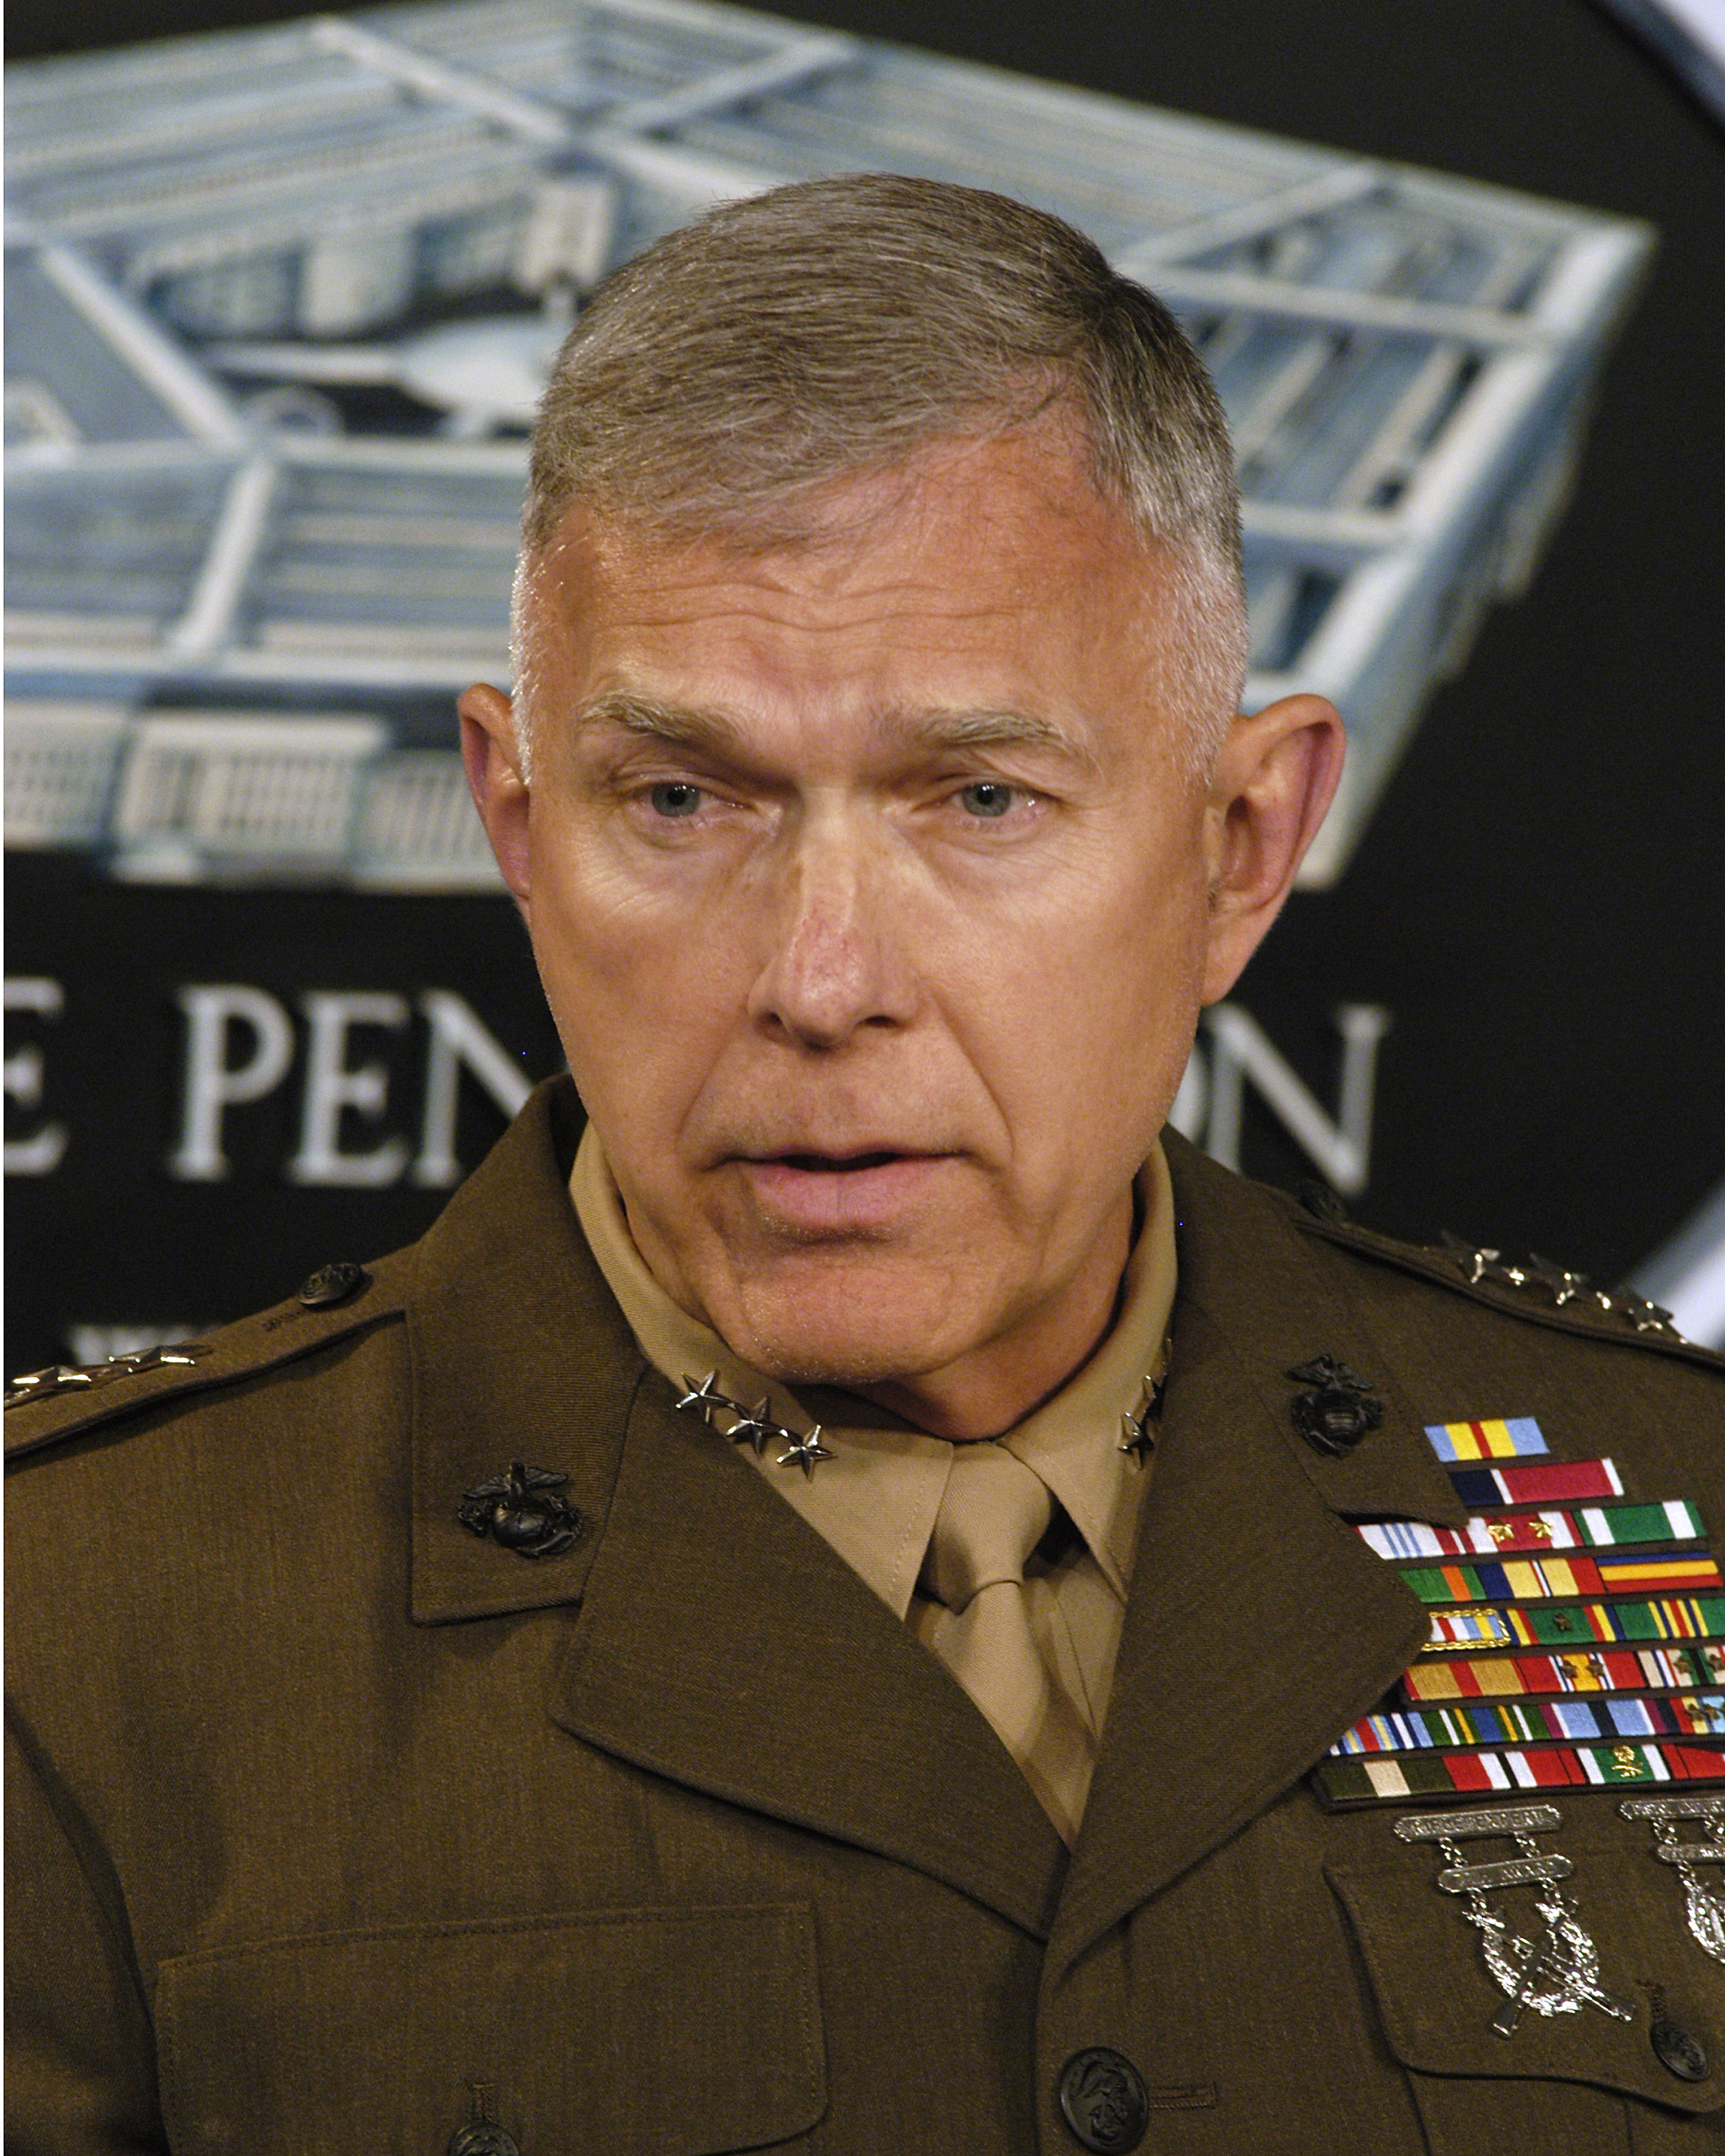 http://upload.wikimedia.org/wikipedia/commons/1/1f/Gen_James_Terry_Conway_June_2005.jpg